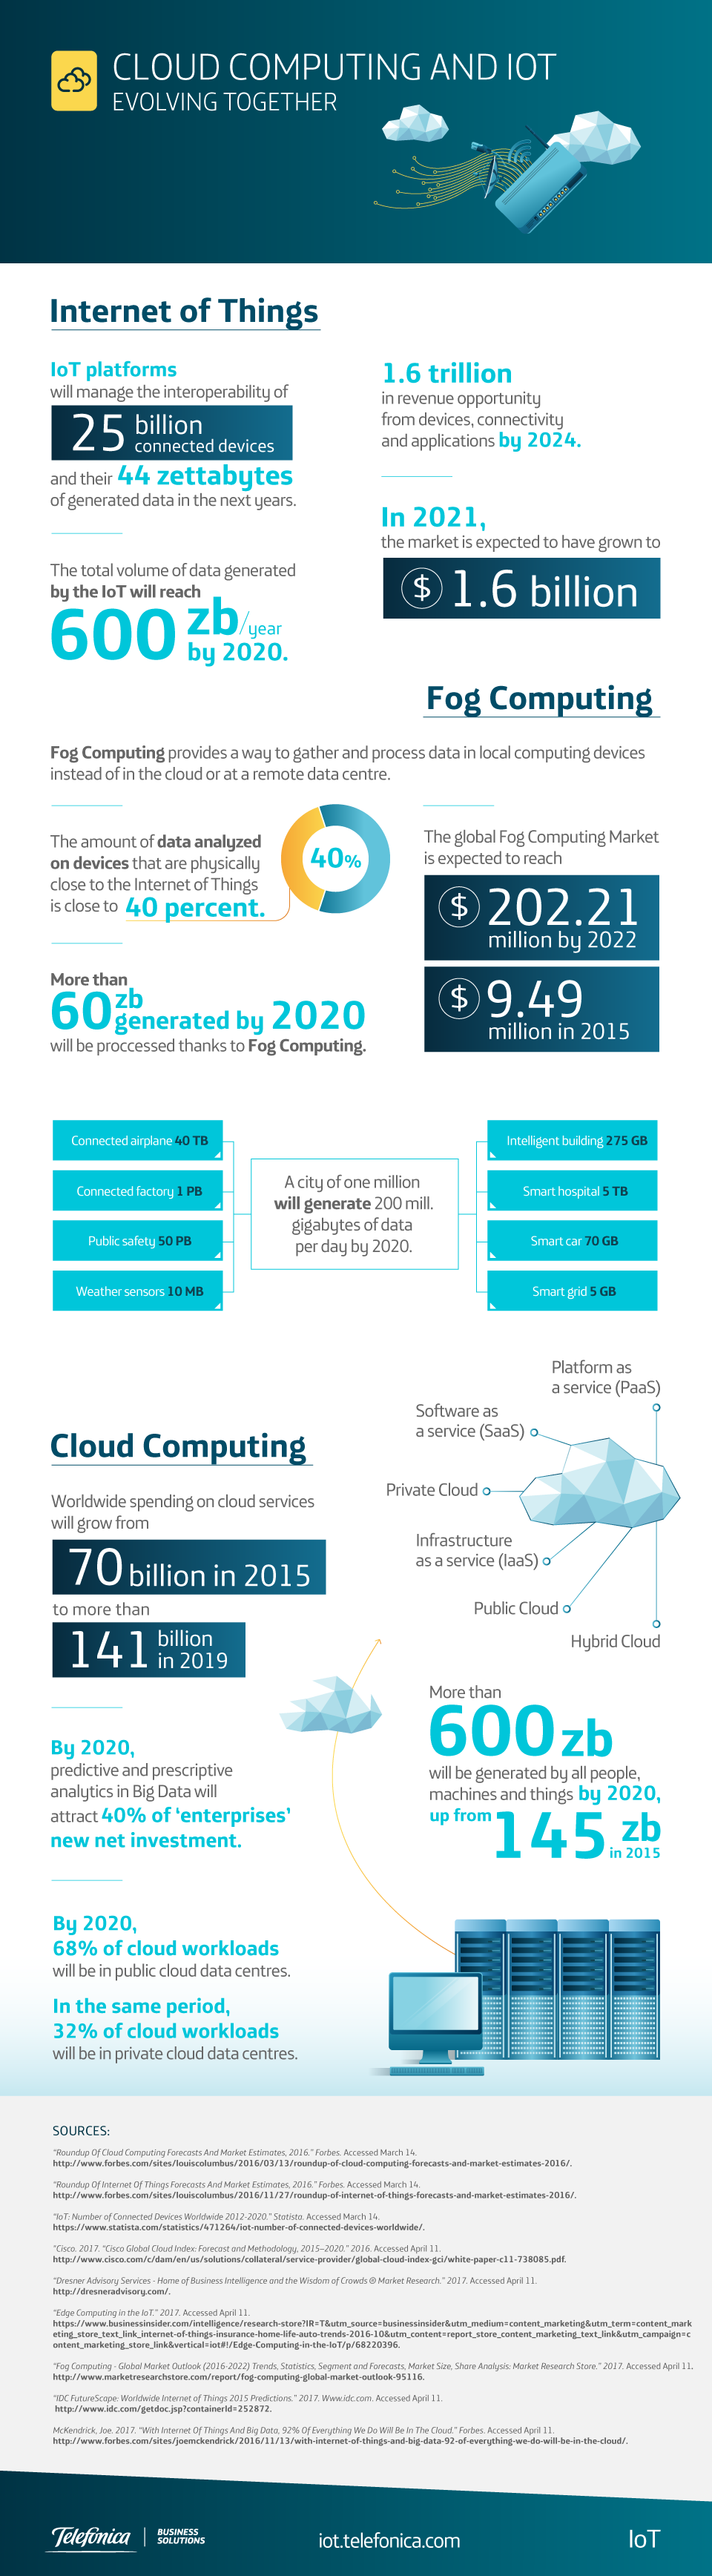 Cloud Computing and IoT - Evolving together